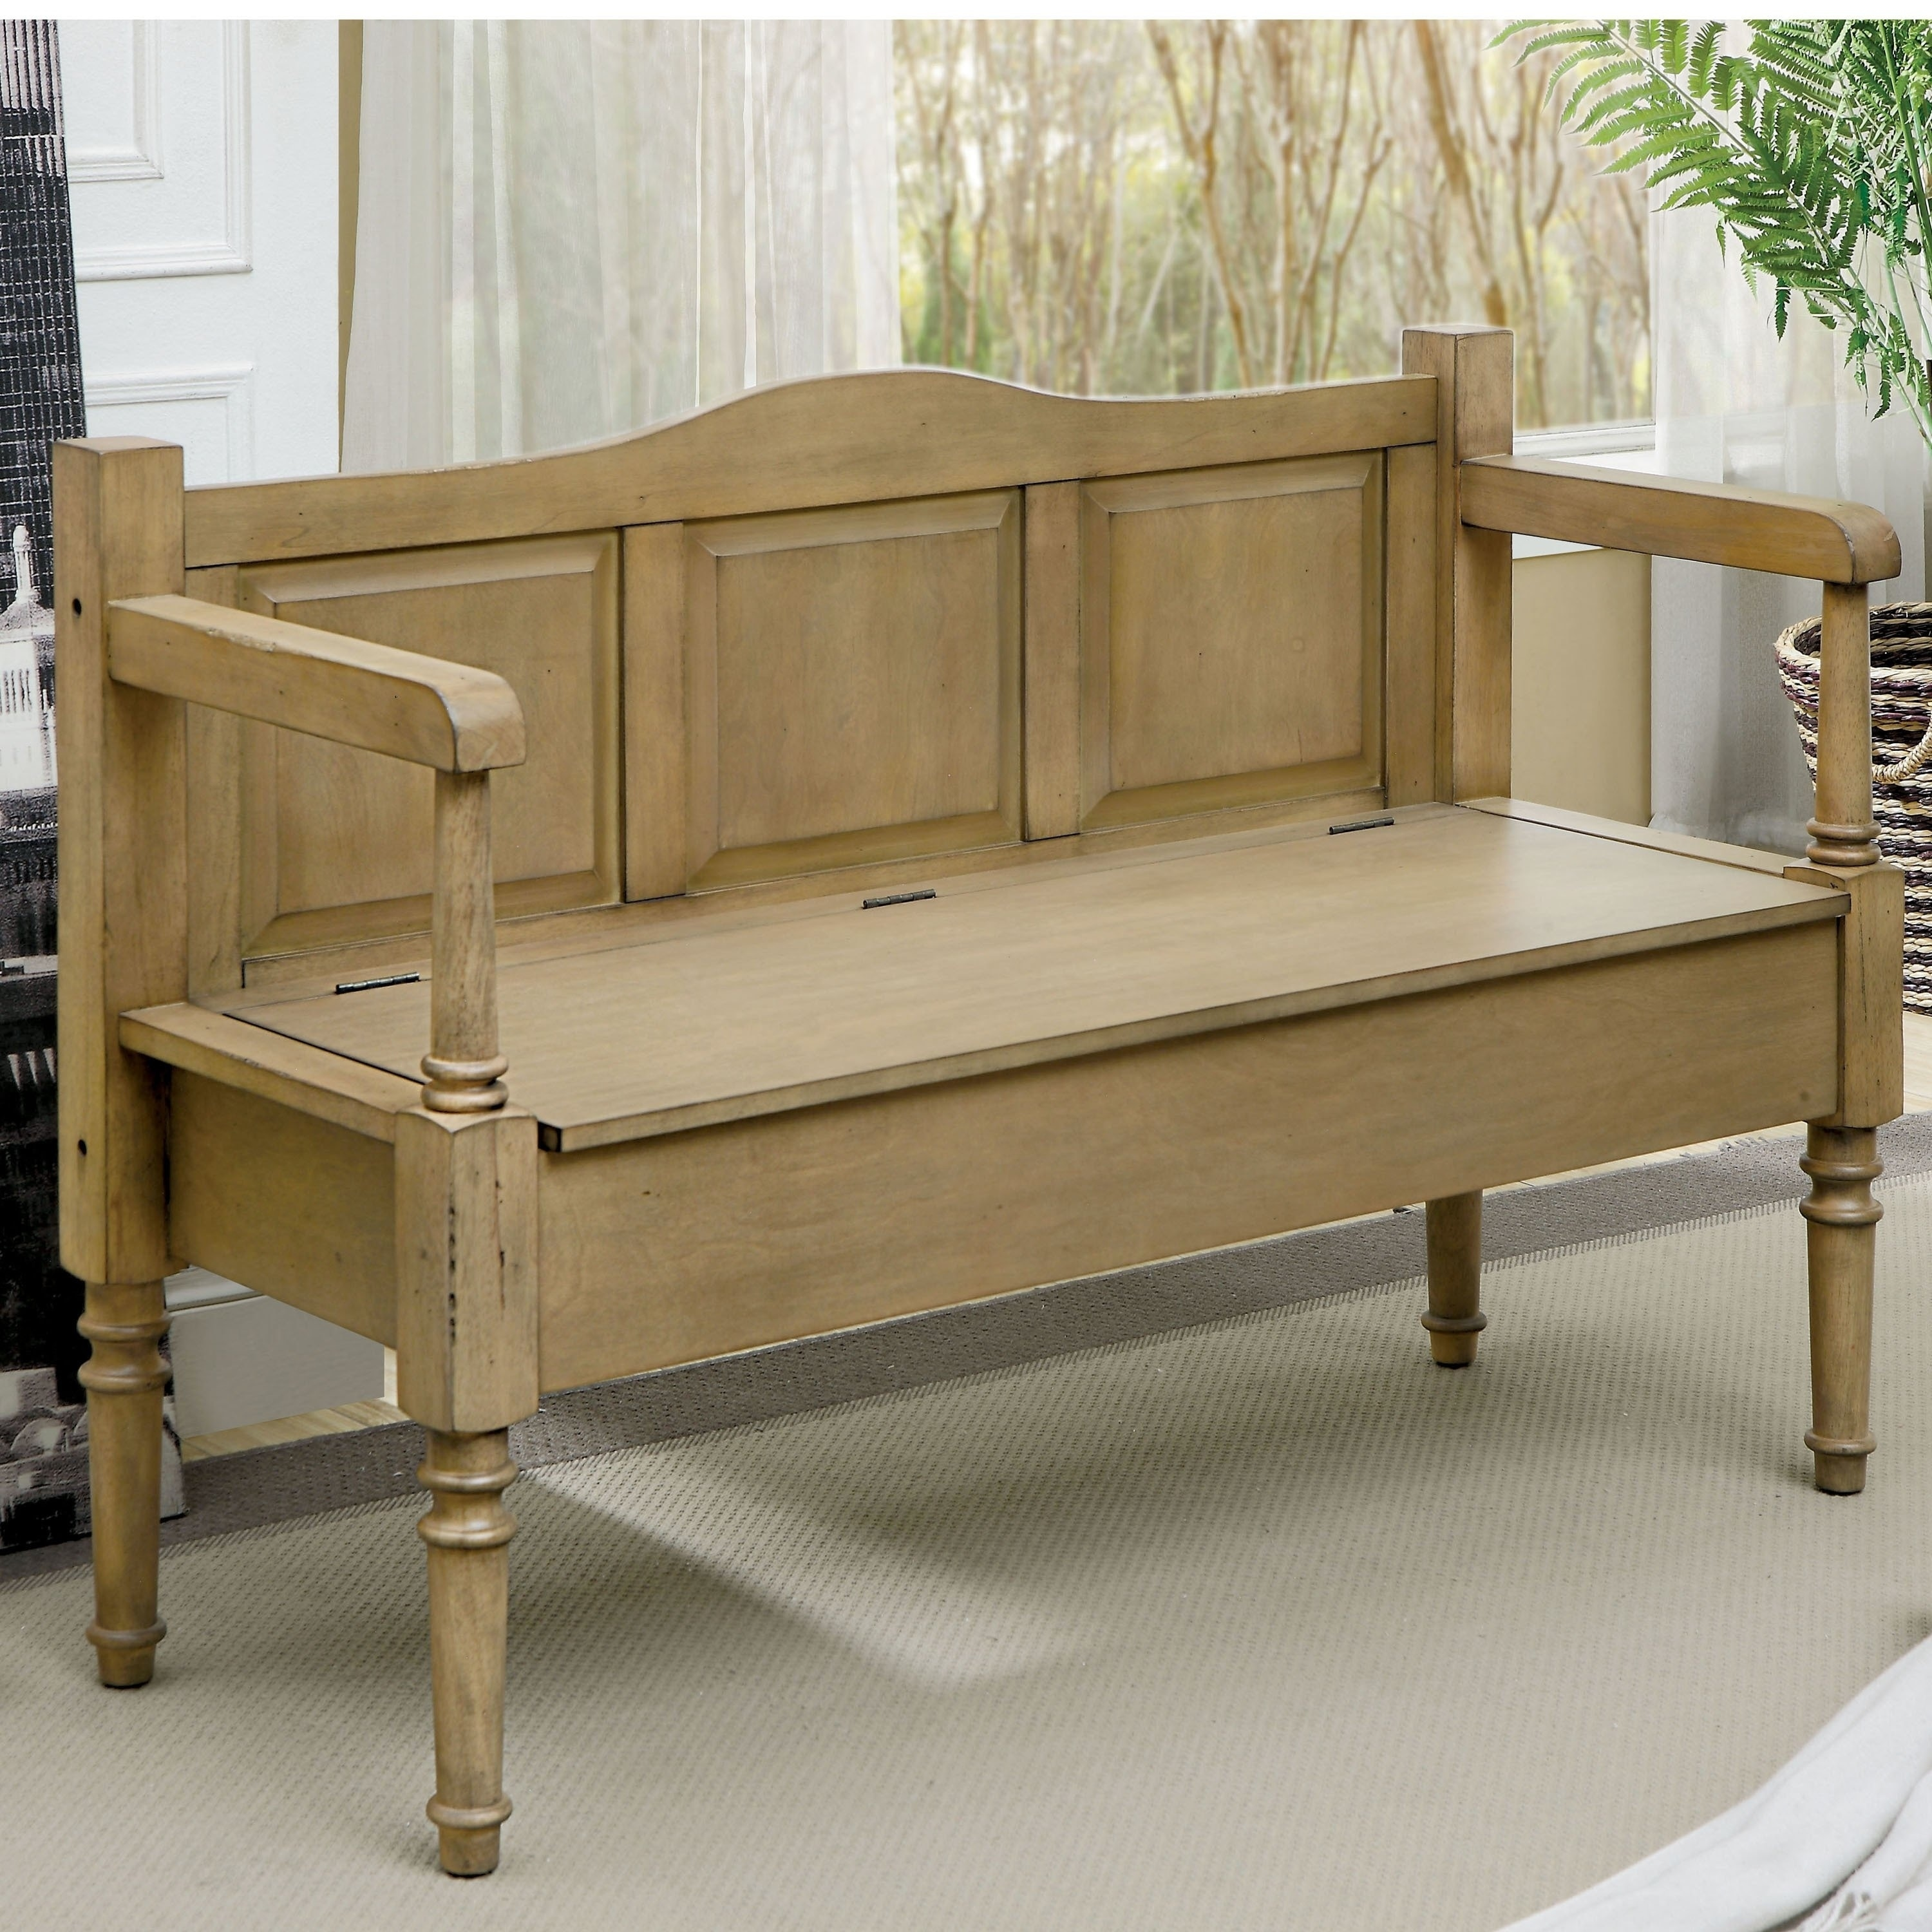 Simpli home makes a contemporary yet traditional solid wood entryway storage bench that works with virtually any style decor. furniture of america mimi transitional solid wood storage bench walmart com